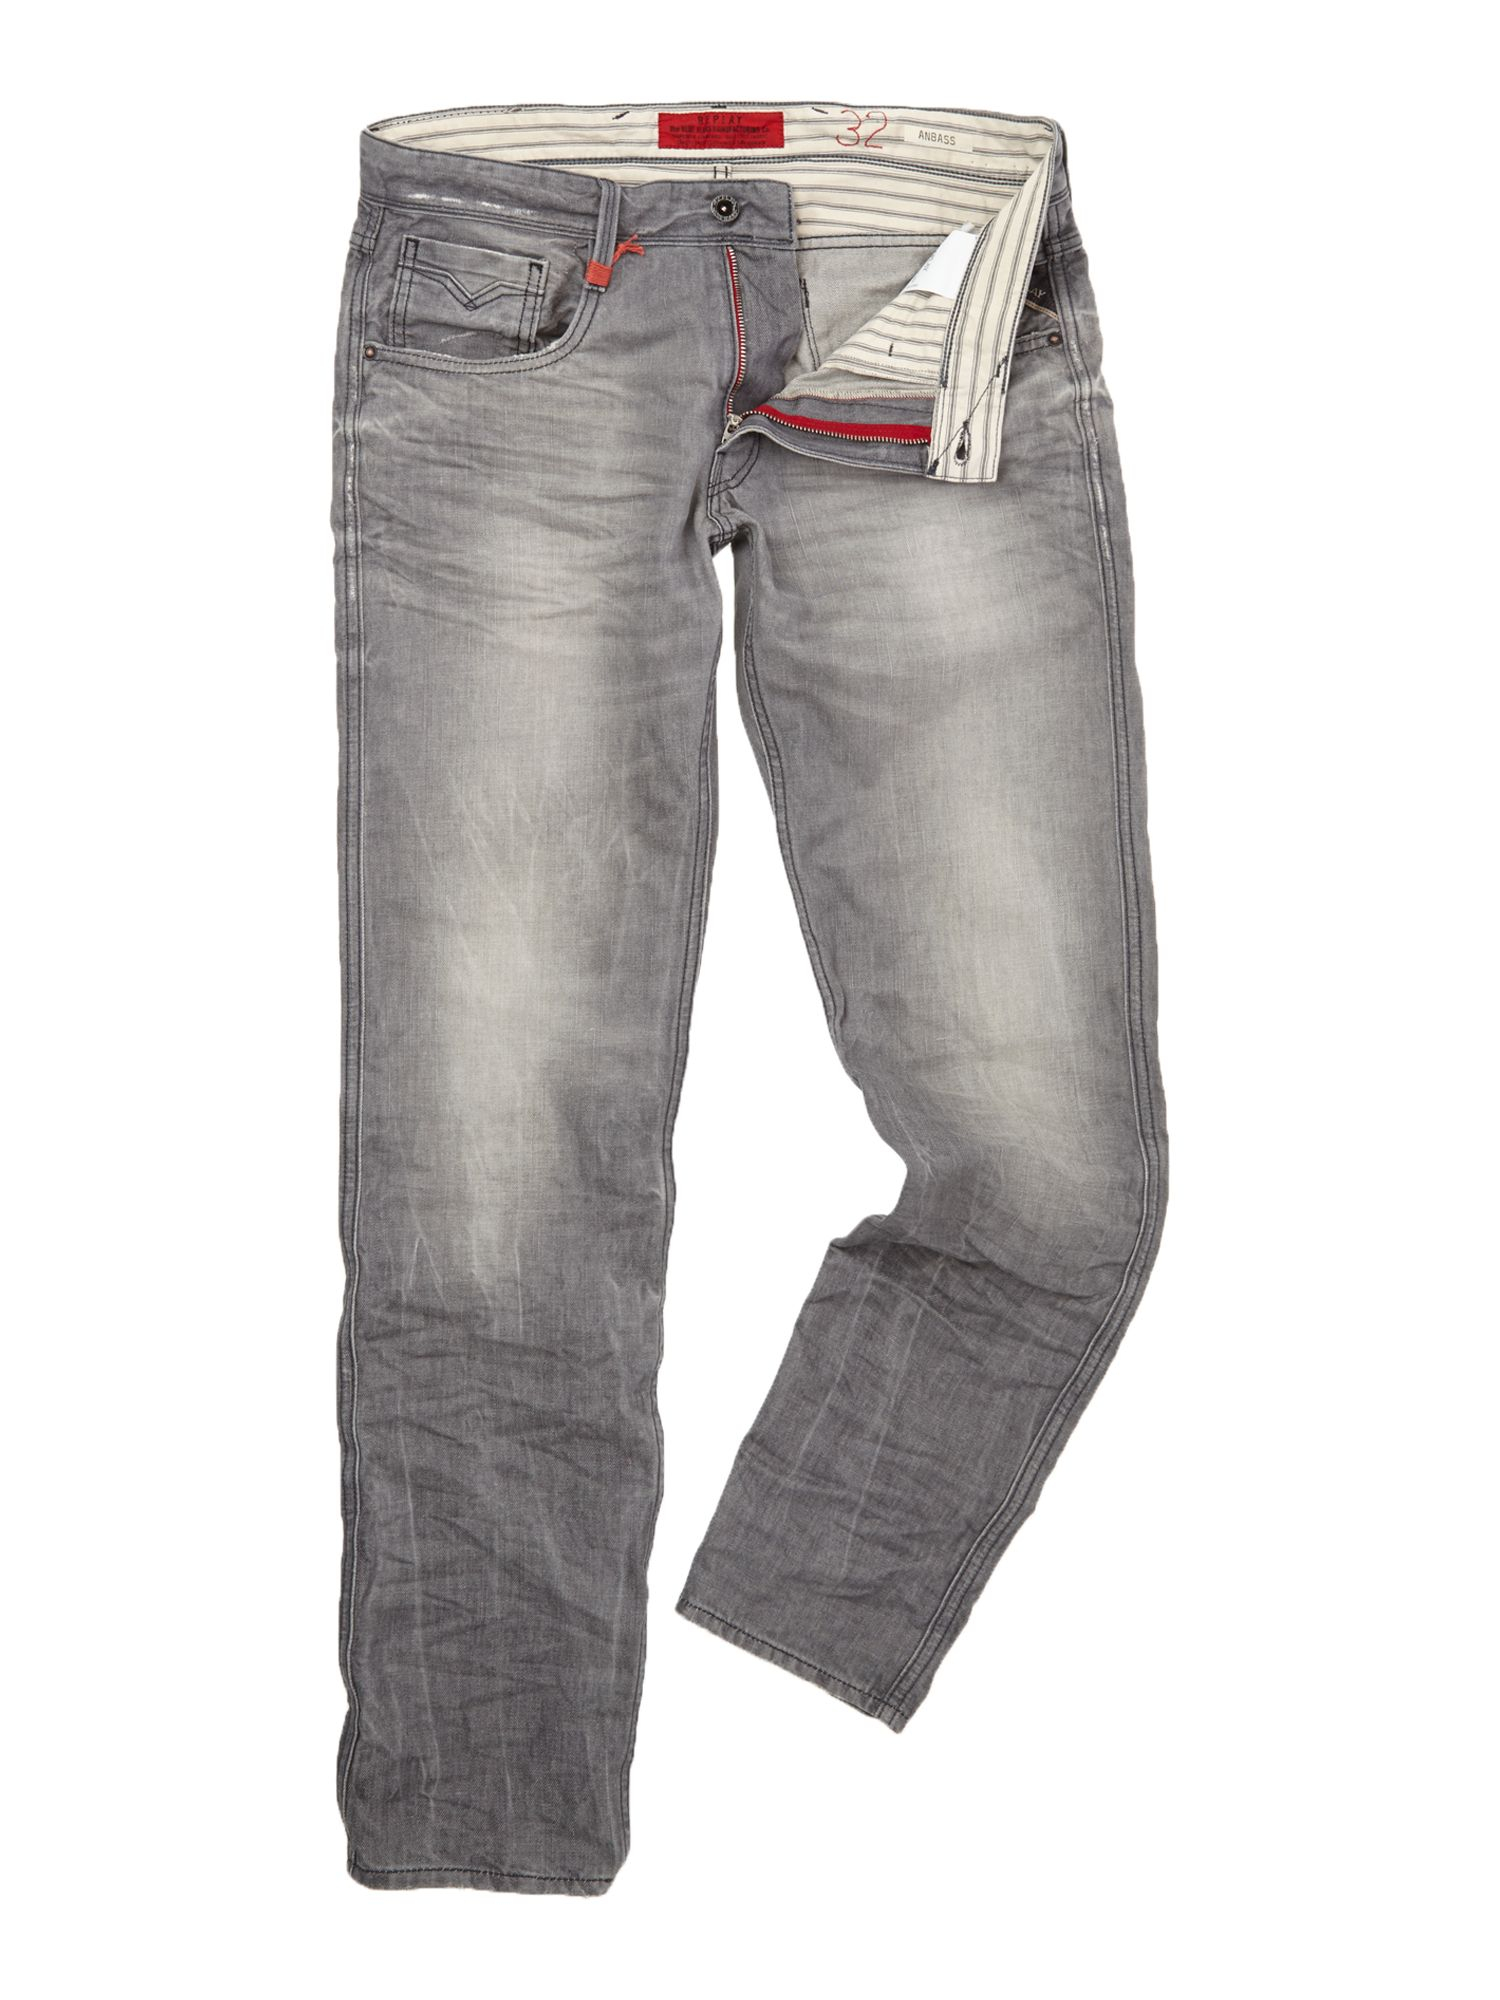 replay anbass slim fit denim jeans in gray for men lyst. Black Bedroom Furniture Sets. Home Design Ideas